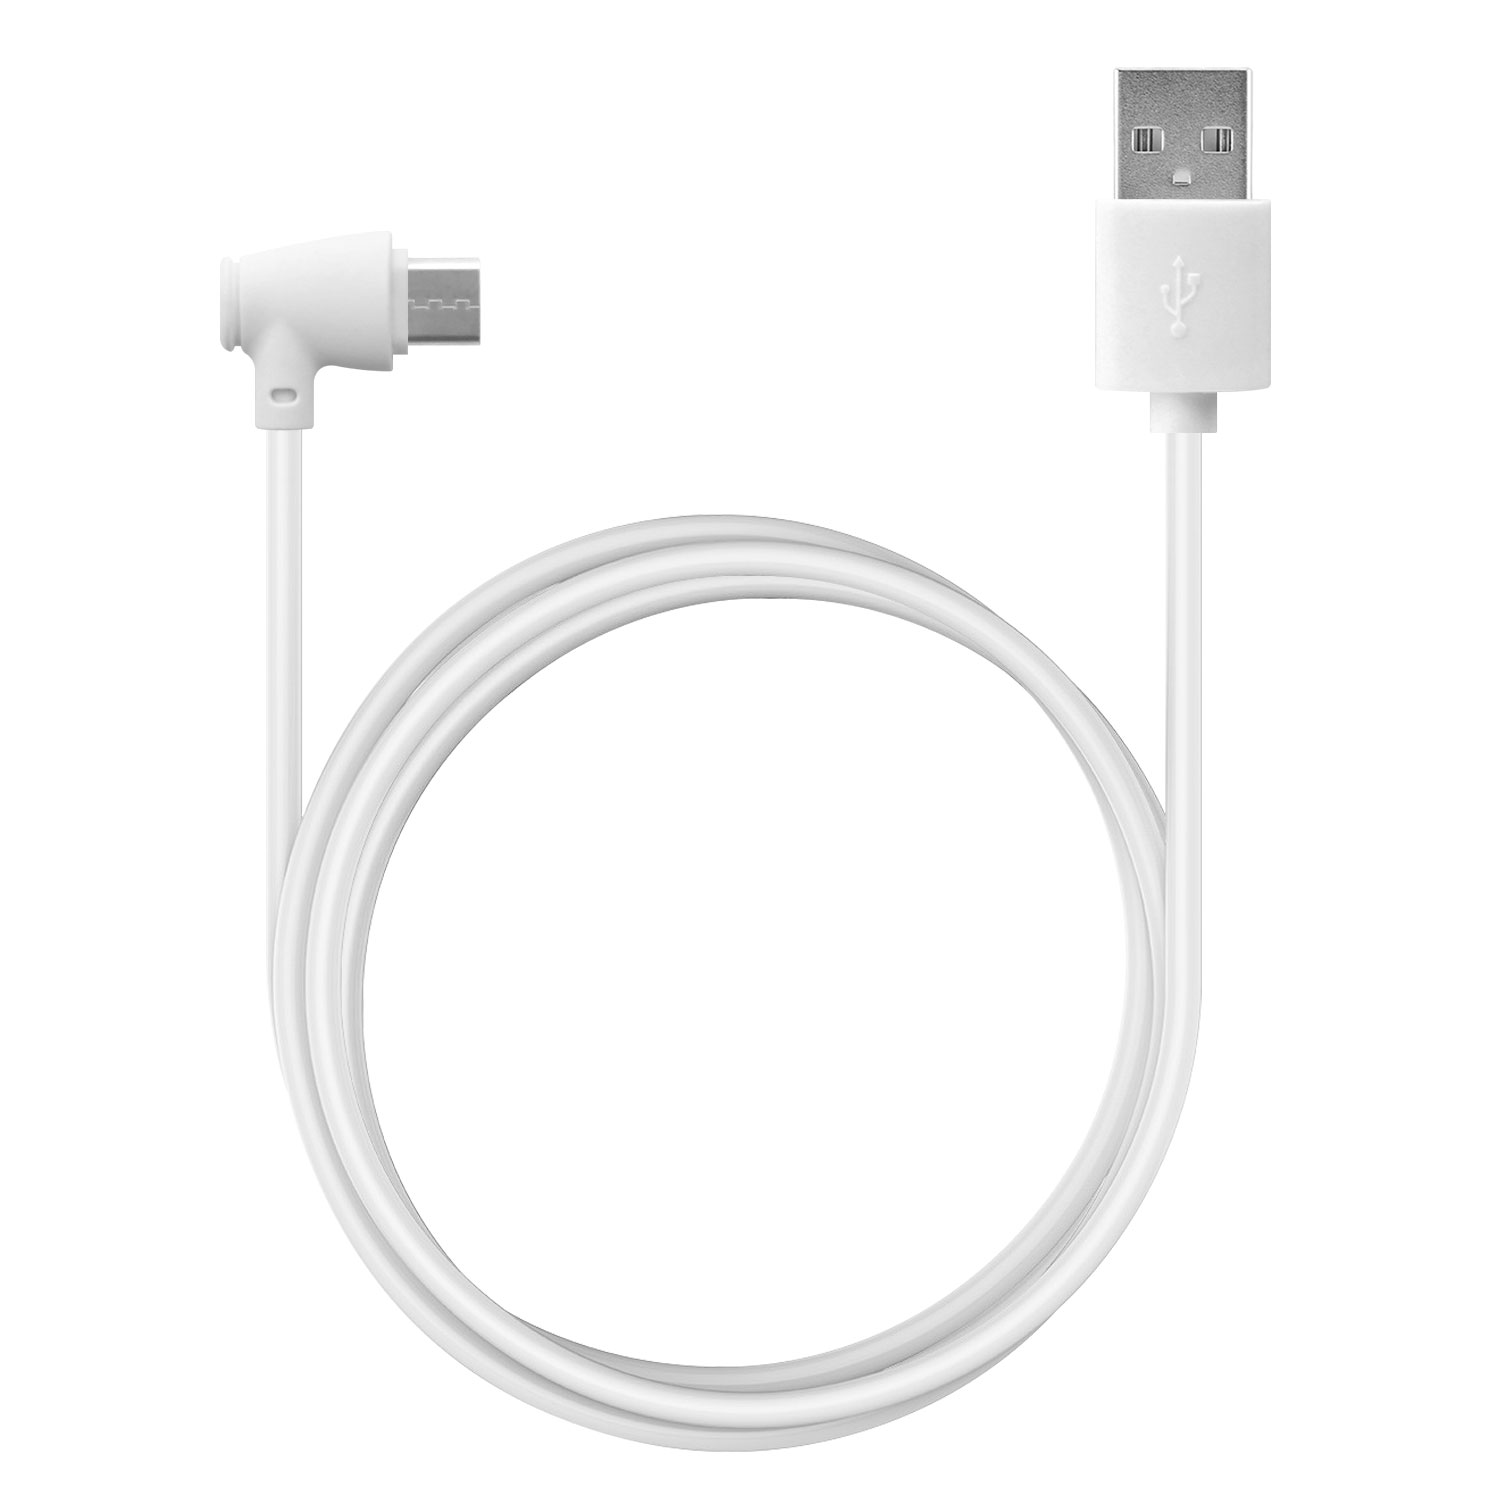 Samsung Galaxy S10e USB Type-C To USB Type-A Data Charging Cable White 3.3ft Angled